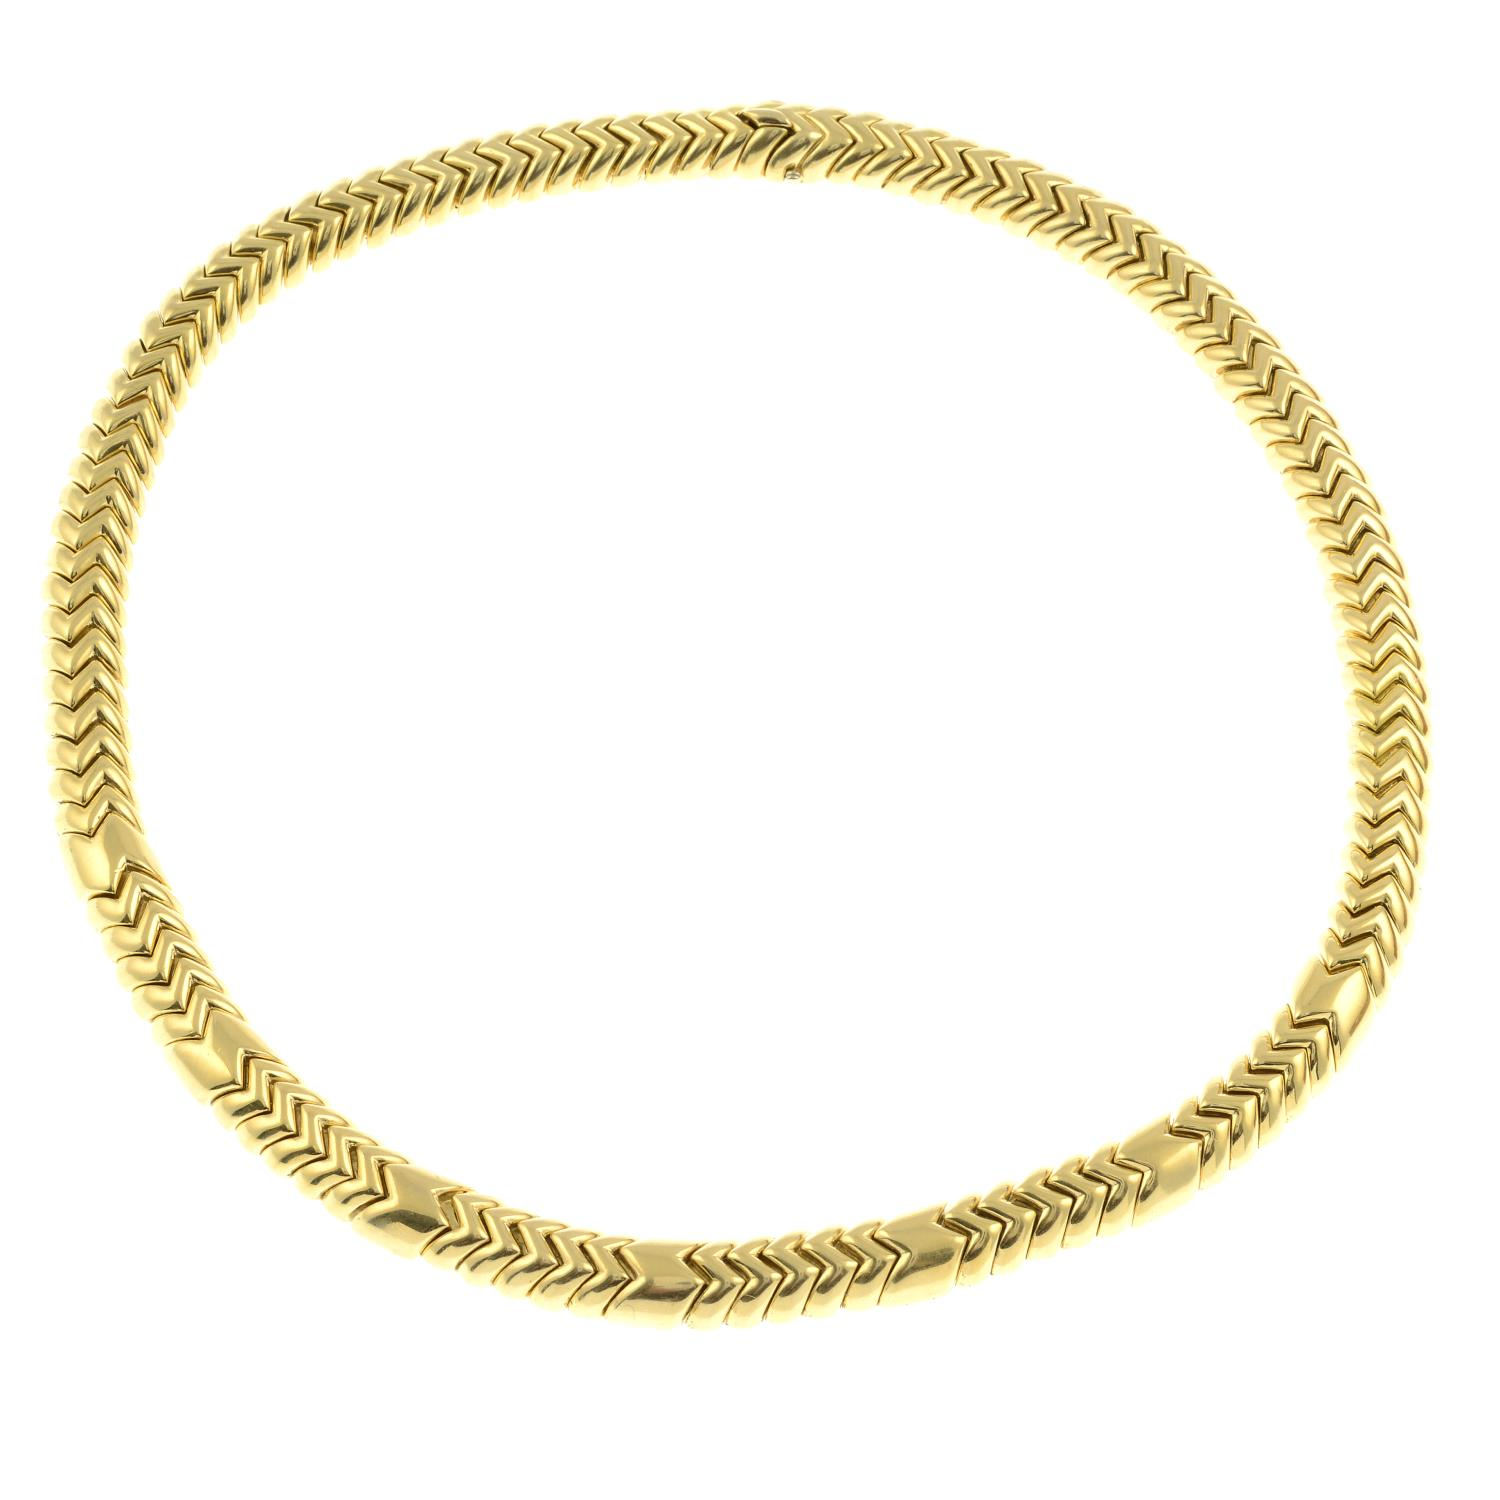 An 18ct gold 'Spiga' necklace, by Bulgari. - Image 4 of 6